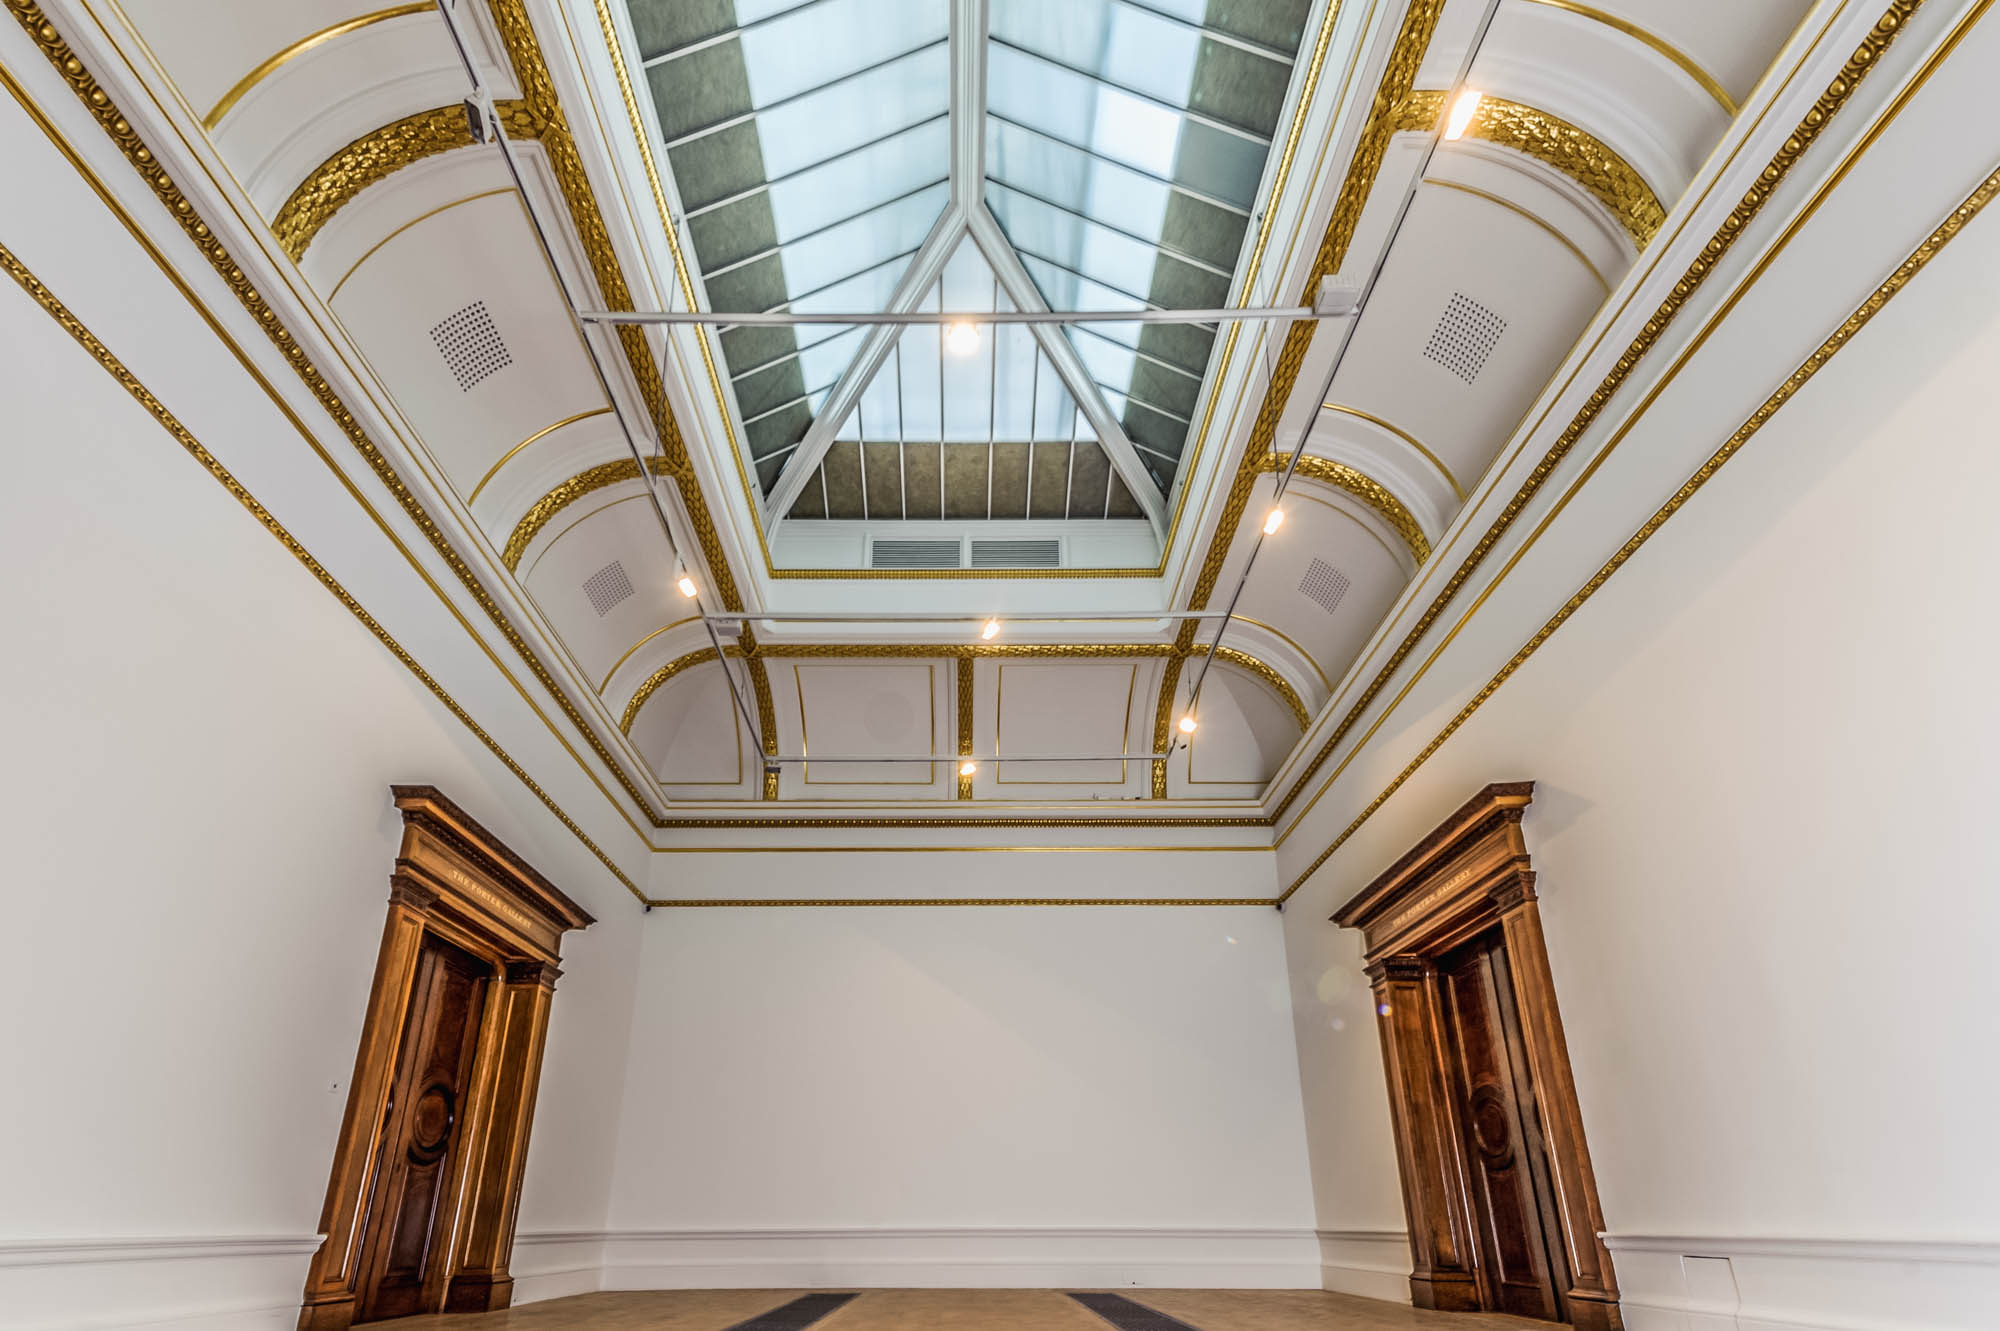 A photo of the interior of a gallery at the royal academy of arts